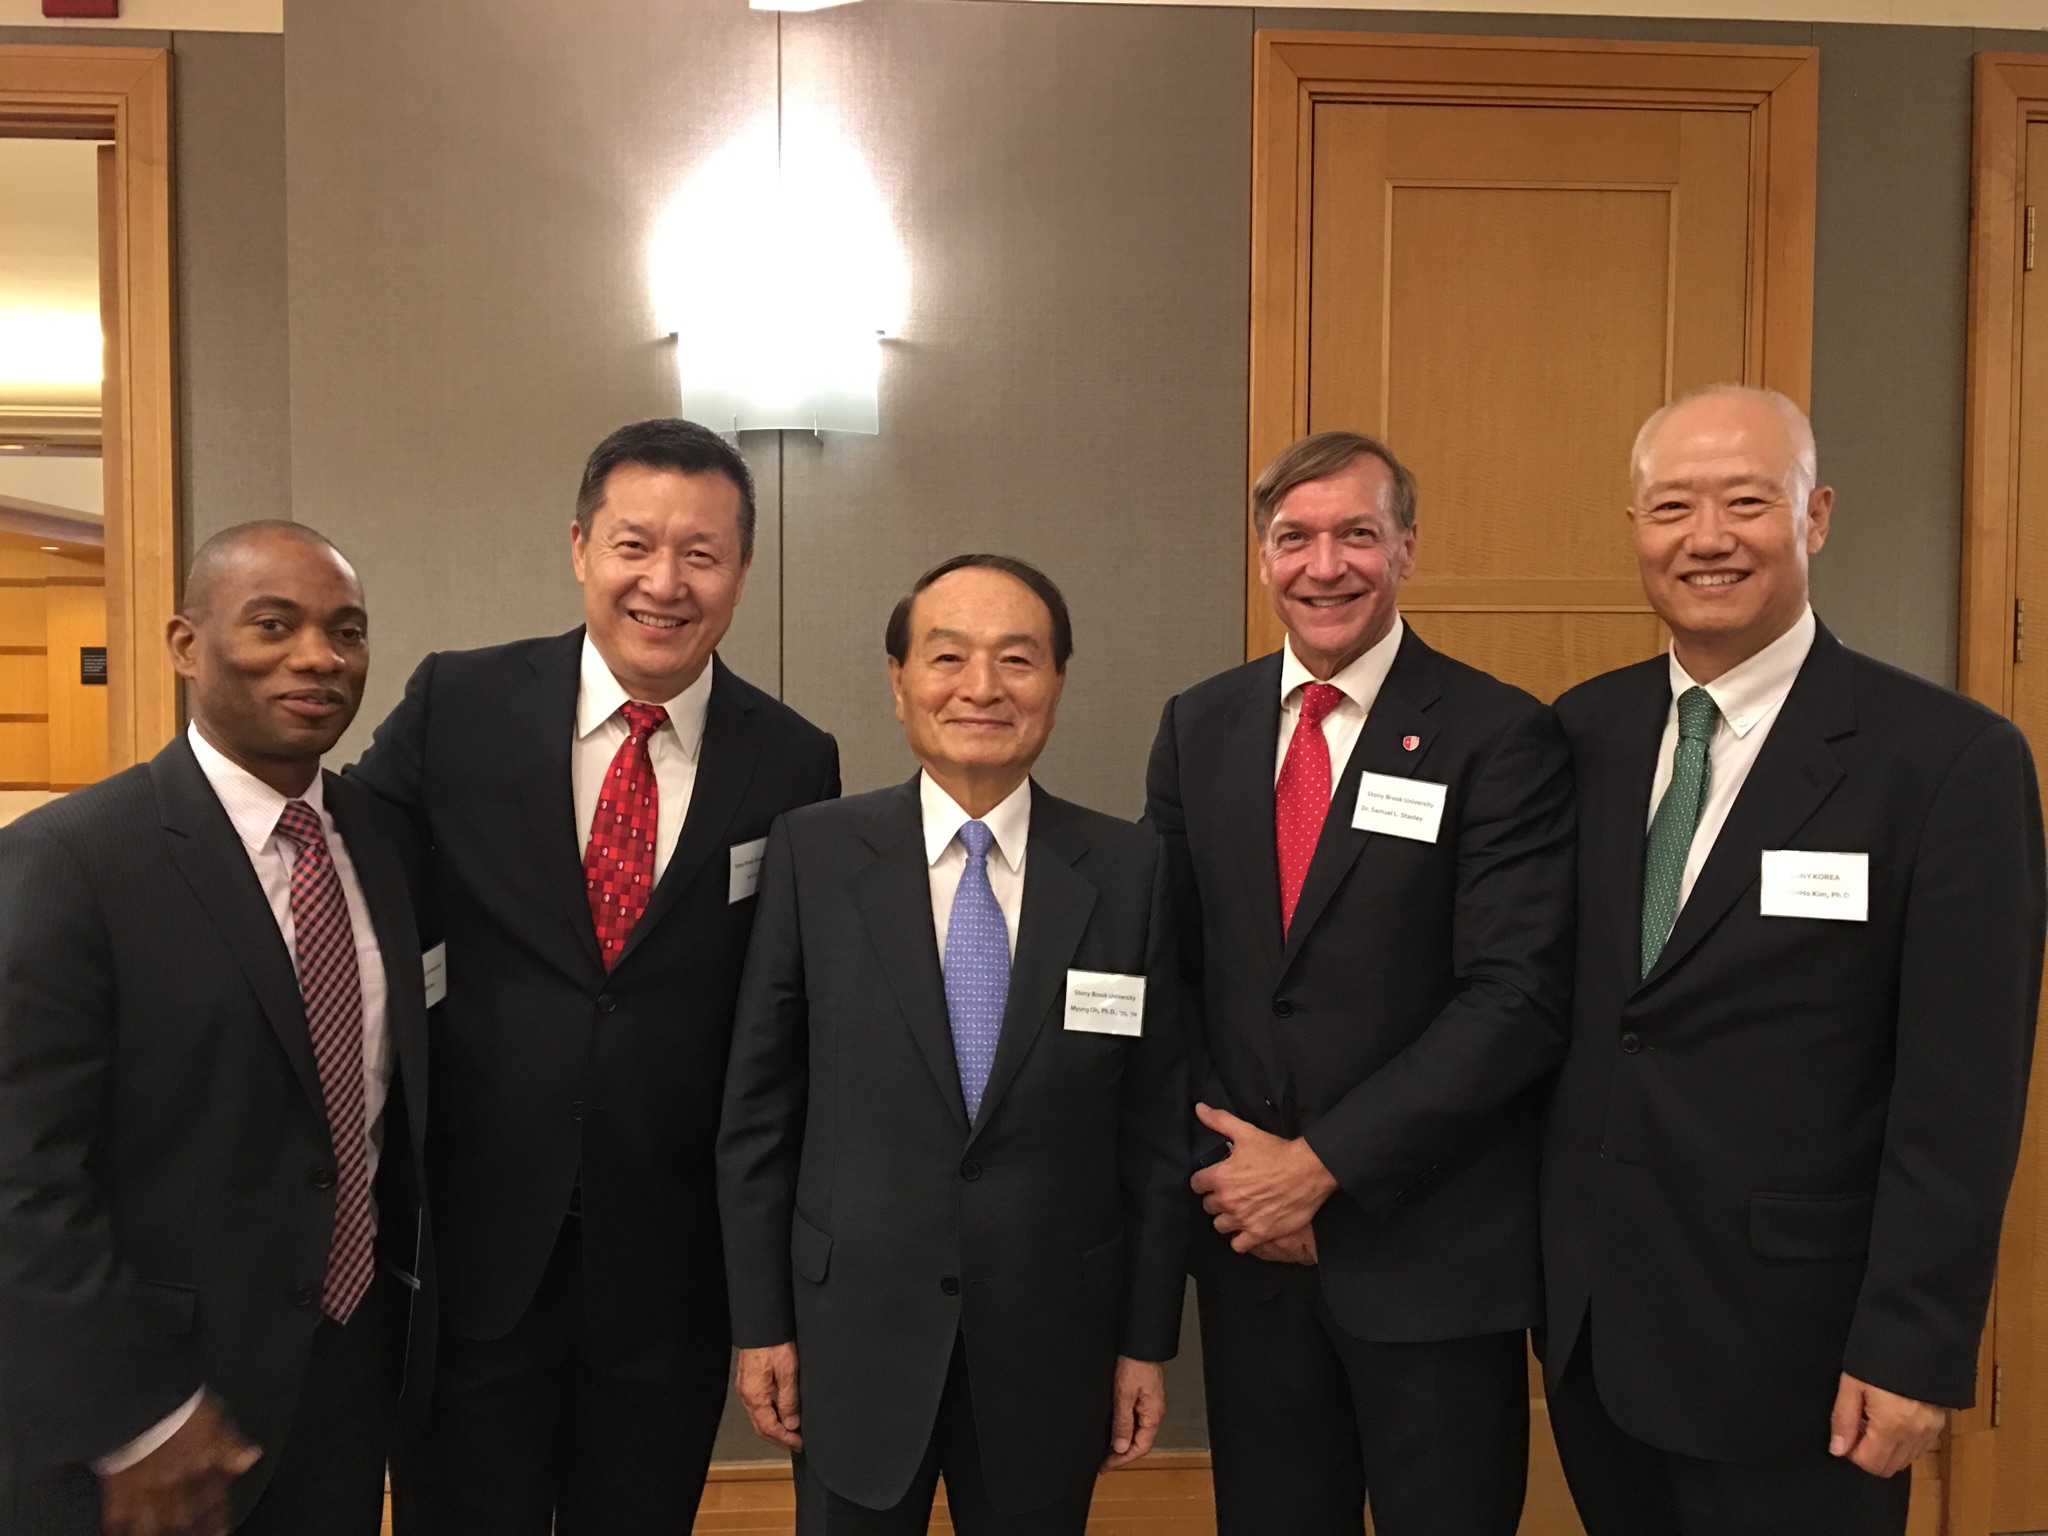 From left to right: Dexter A. Bailey, Jr., Senior Vice President, Stony Brook University Advancement; Dr. Jun Liu, Vice Provost for Global Affairs, Dean for International Academic Programs and Services (IAPS), Stony Brook University; Dr, Myung Oh, Founder, SUNY Korea; Dr. Samuel L. Stanley, Jr., President, Stony Brook University; Dr. ChoonHo Kim, President, SUNY Korea.